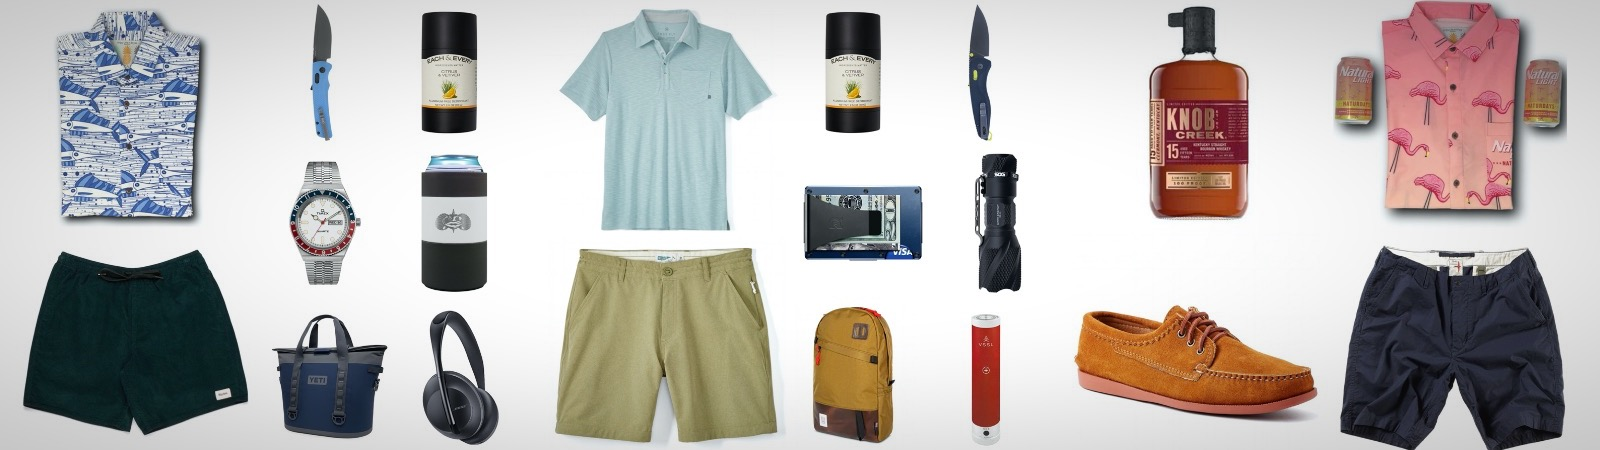 50 'Things We Want' This Week: New Whiskey, Pocket Knives, Golf Apparel, And More